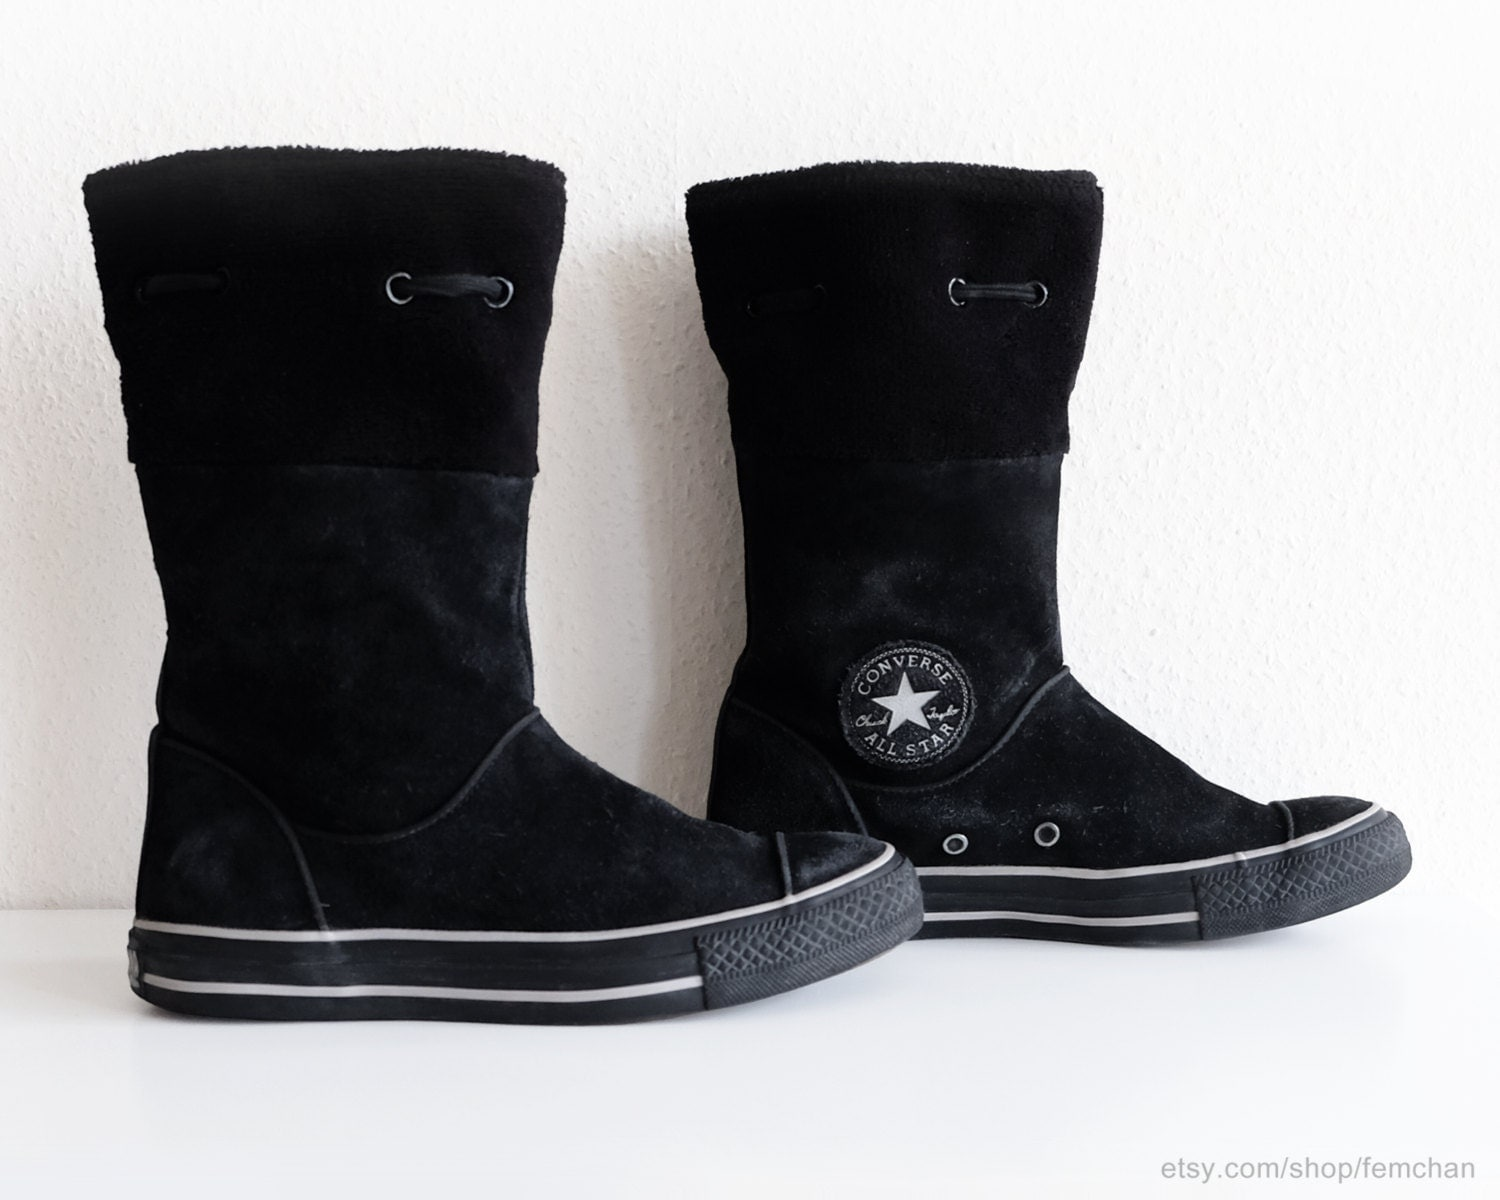 black suede converse boots with soft fleece cuffs calf high